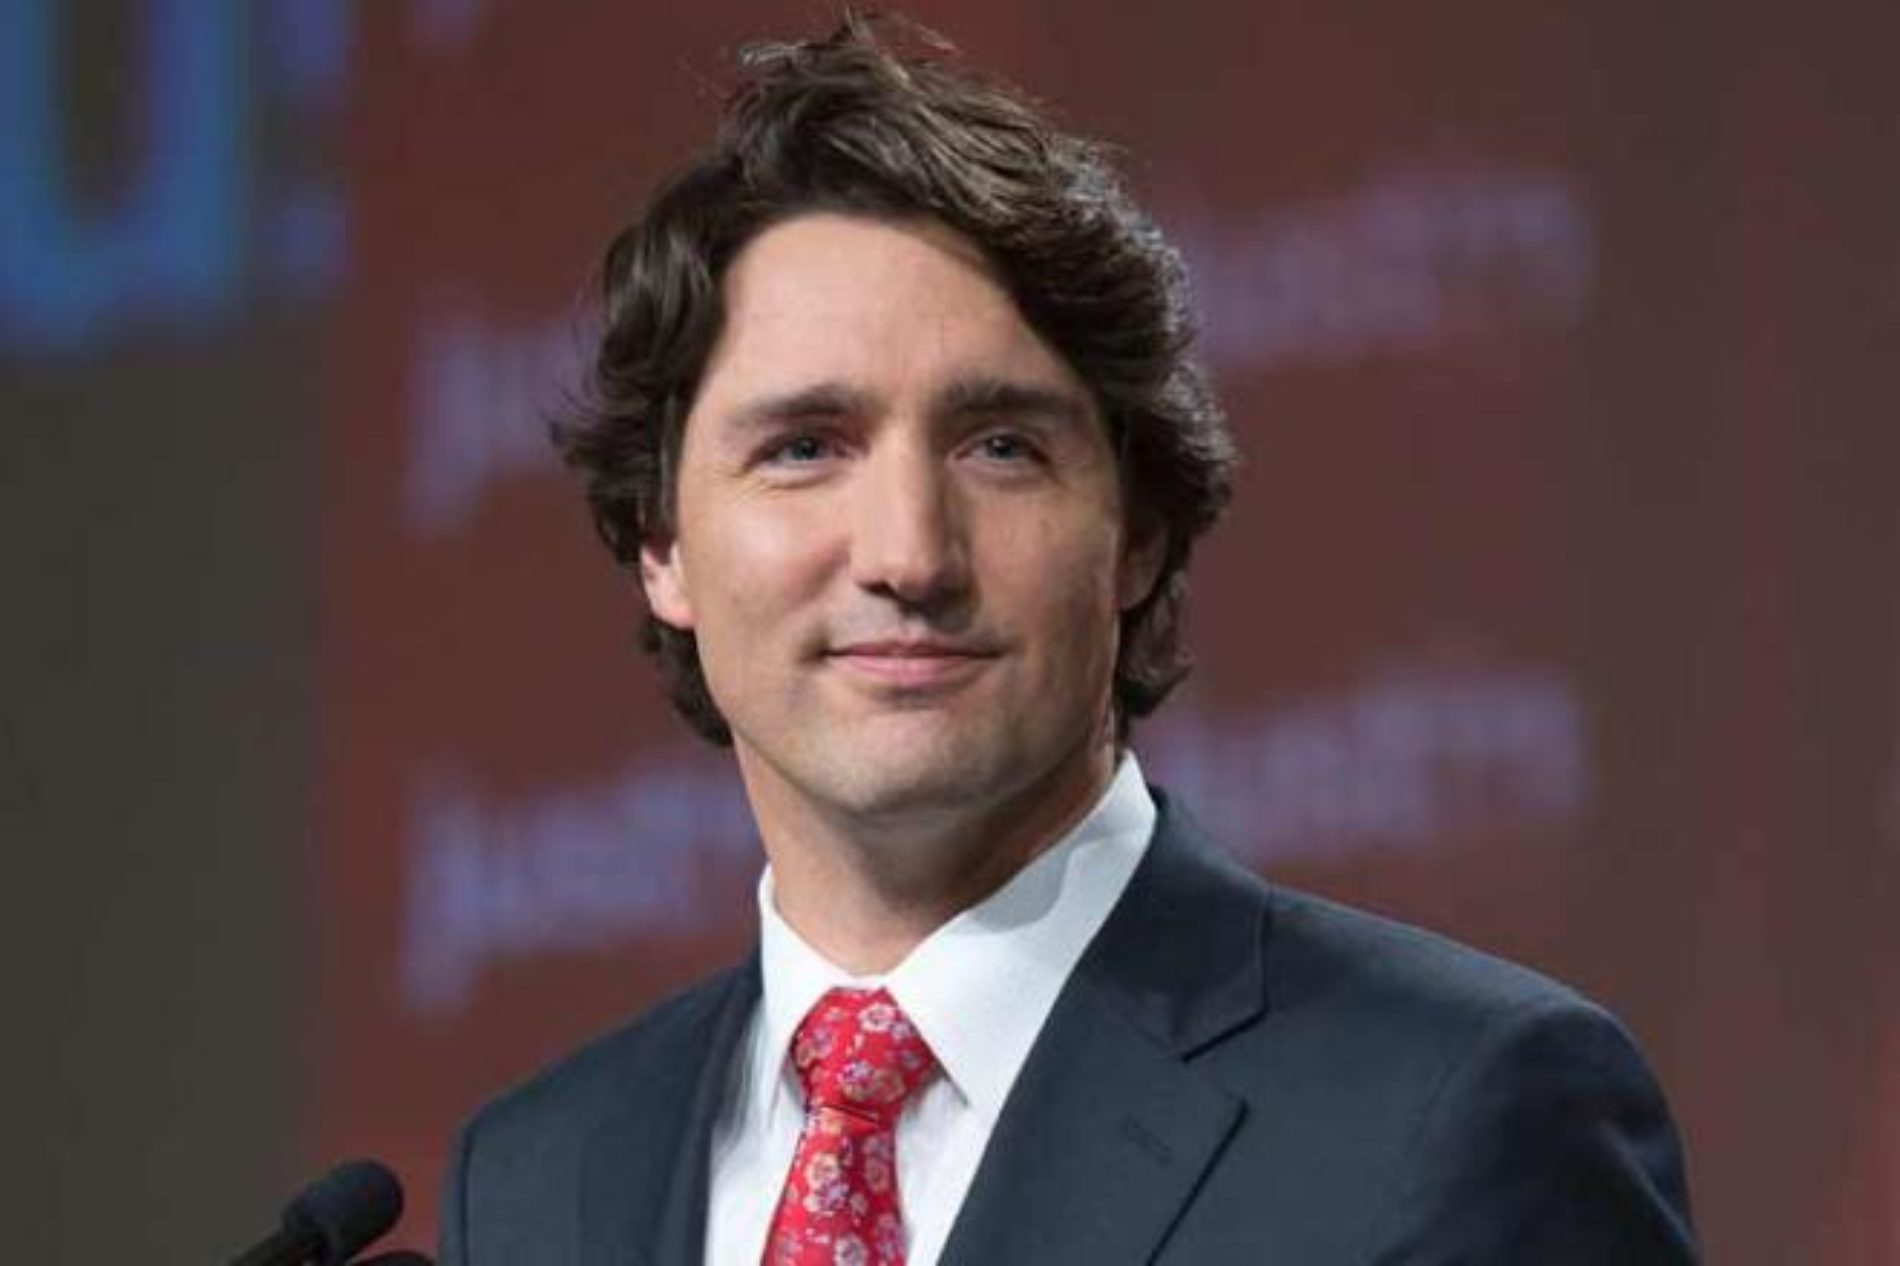 Canadian Prime Minister's words on why he's a feminist are inspiring